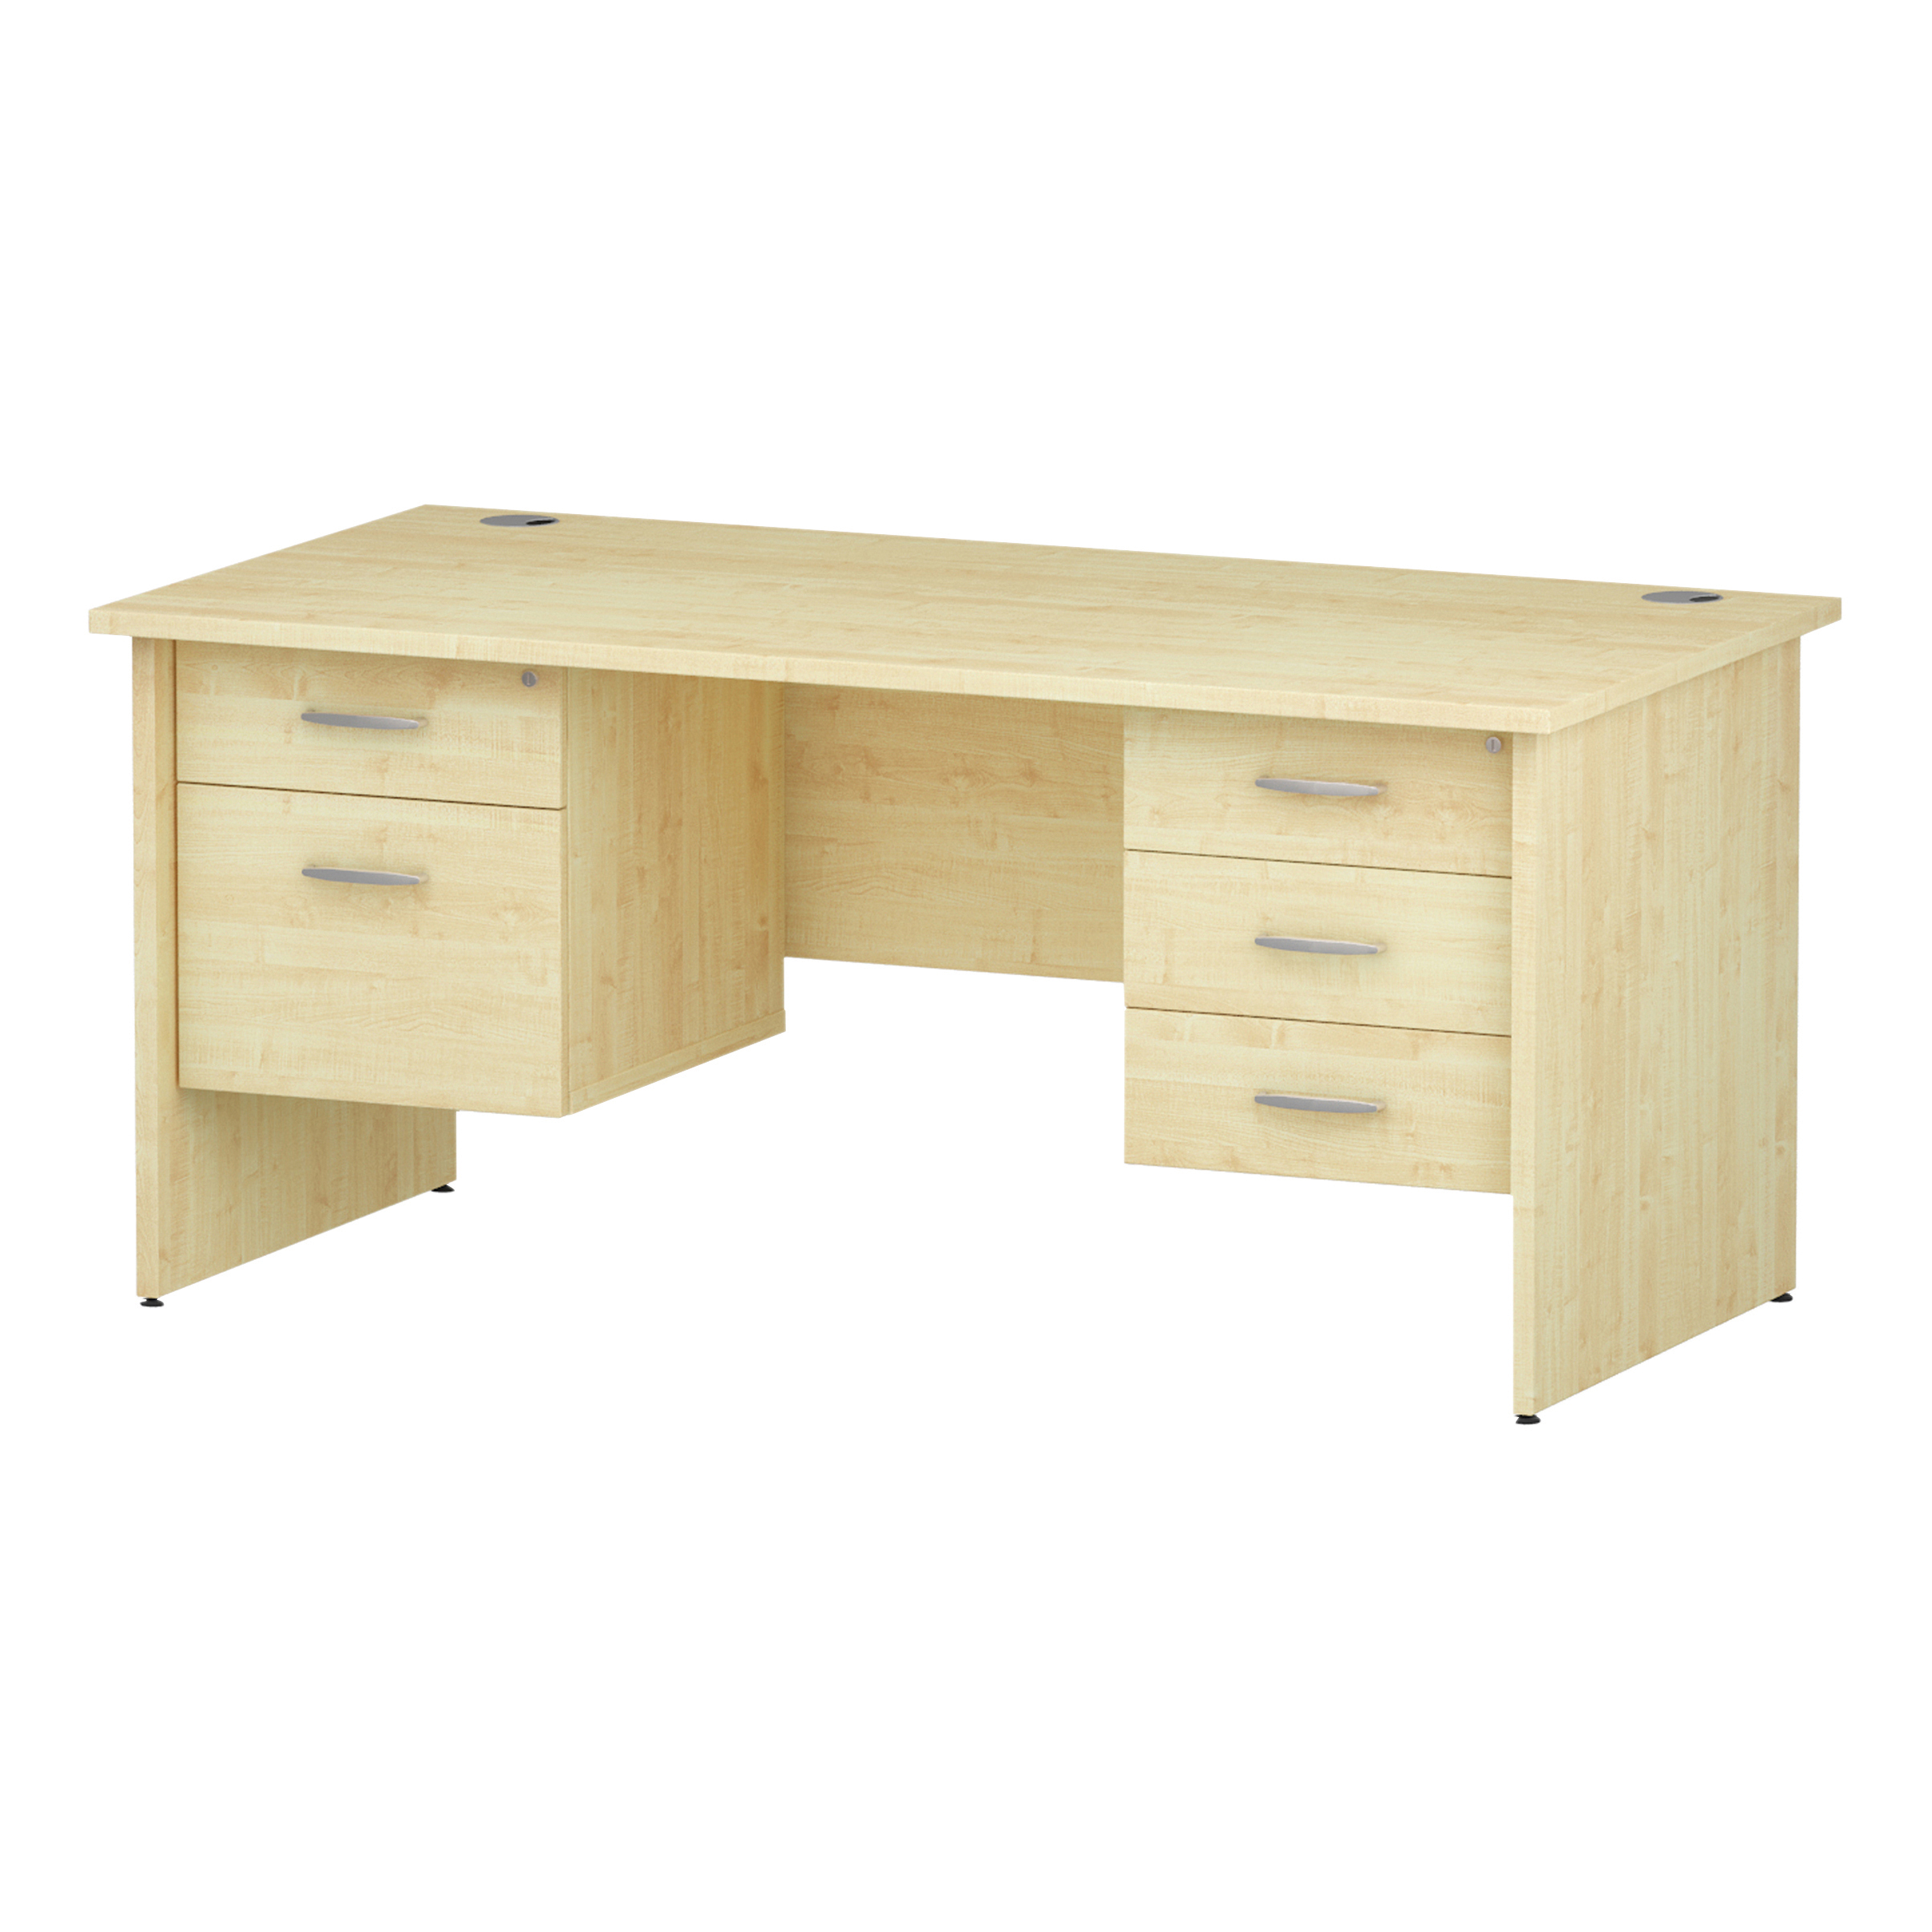 Trexus Rectangular Desk Panel End Leg 1600x800mm Double Fixed Pedestal 2&3 Drawers Maple Ref I002494